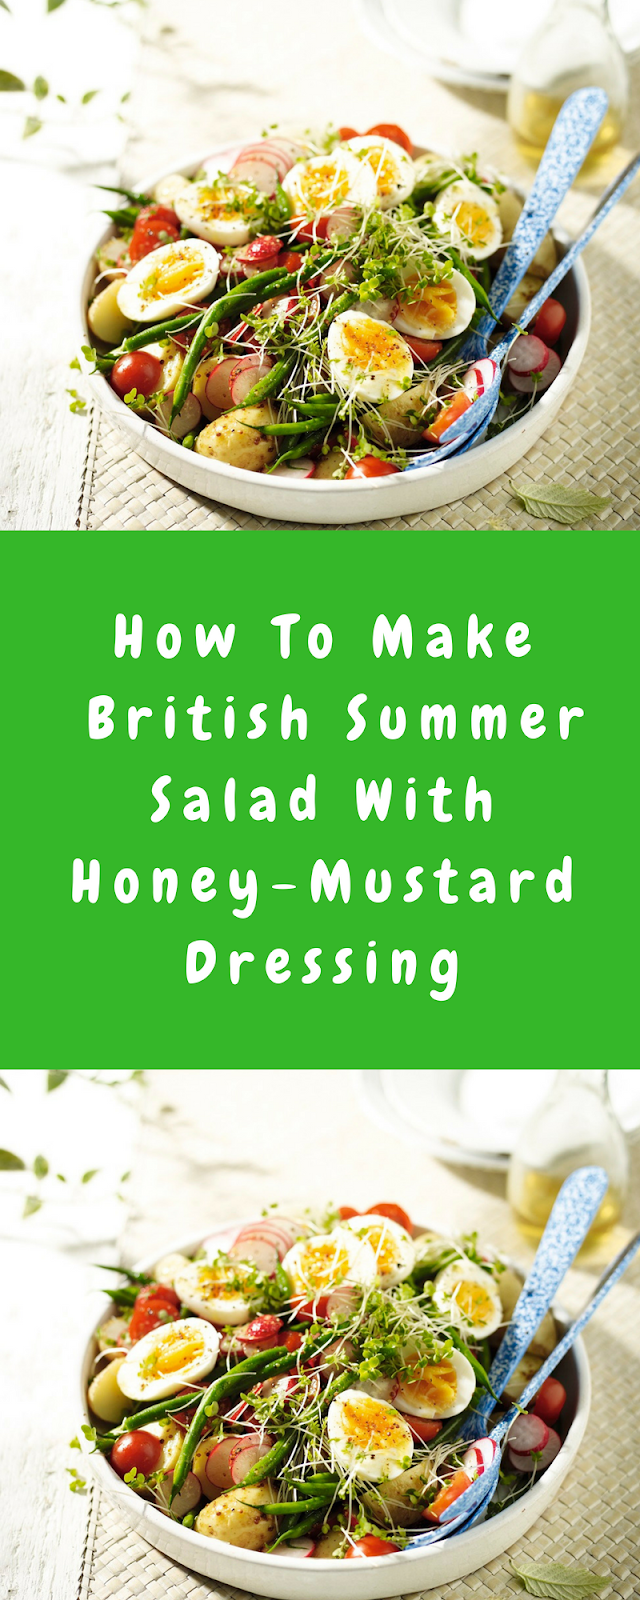 British Summer Salad